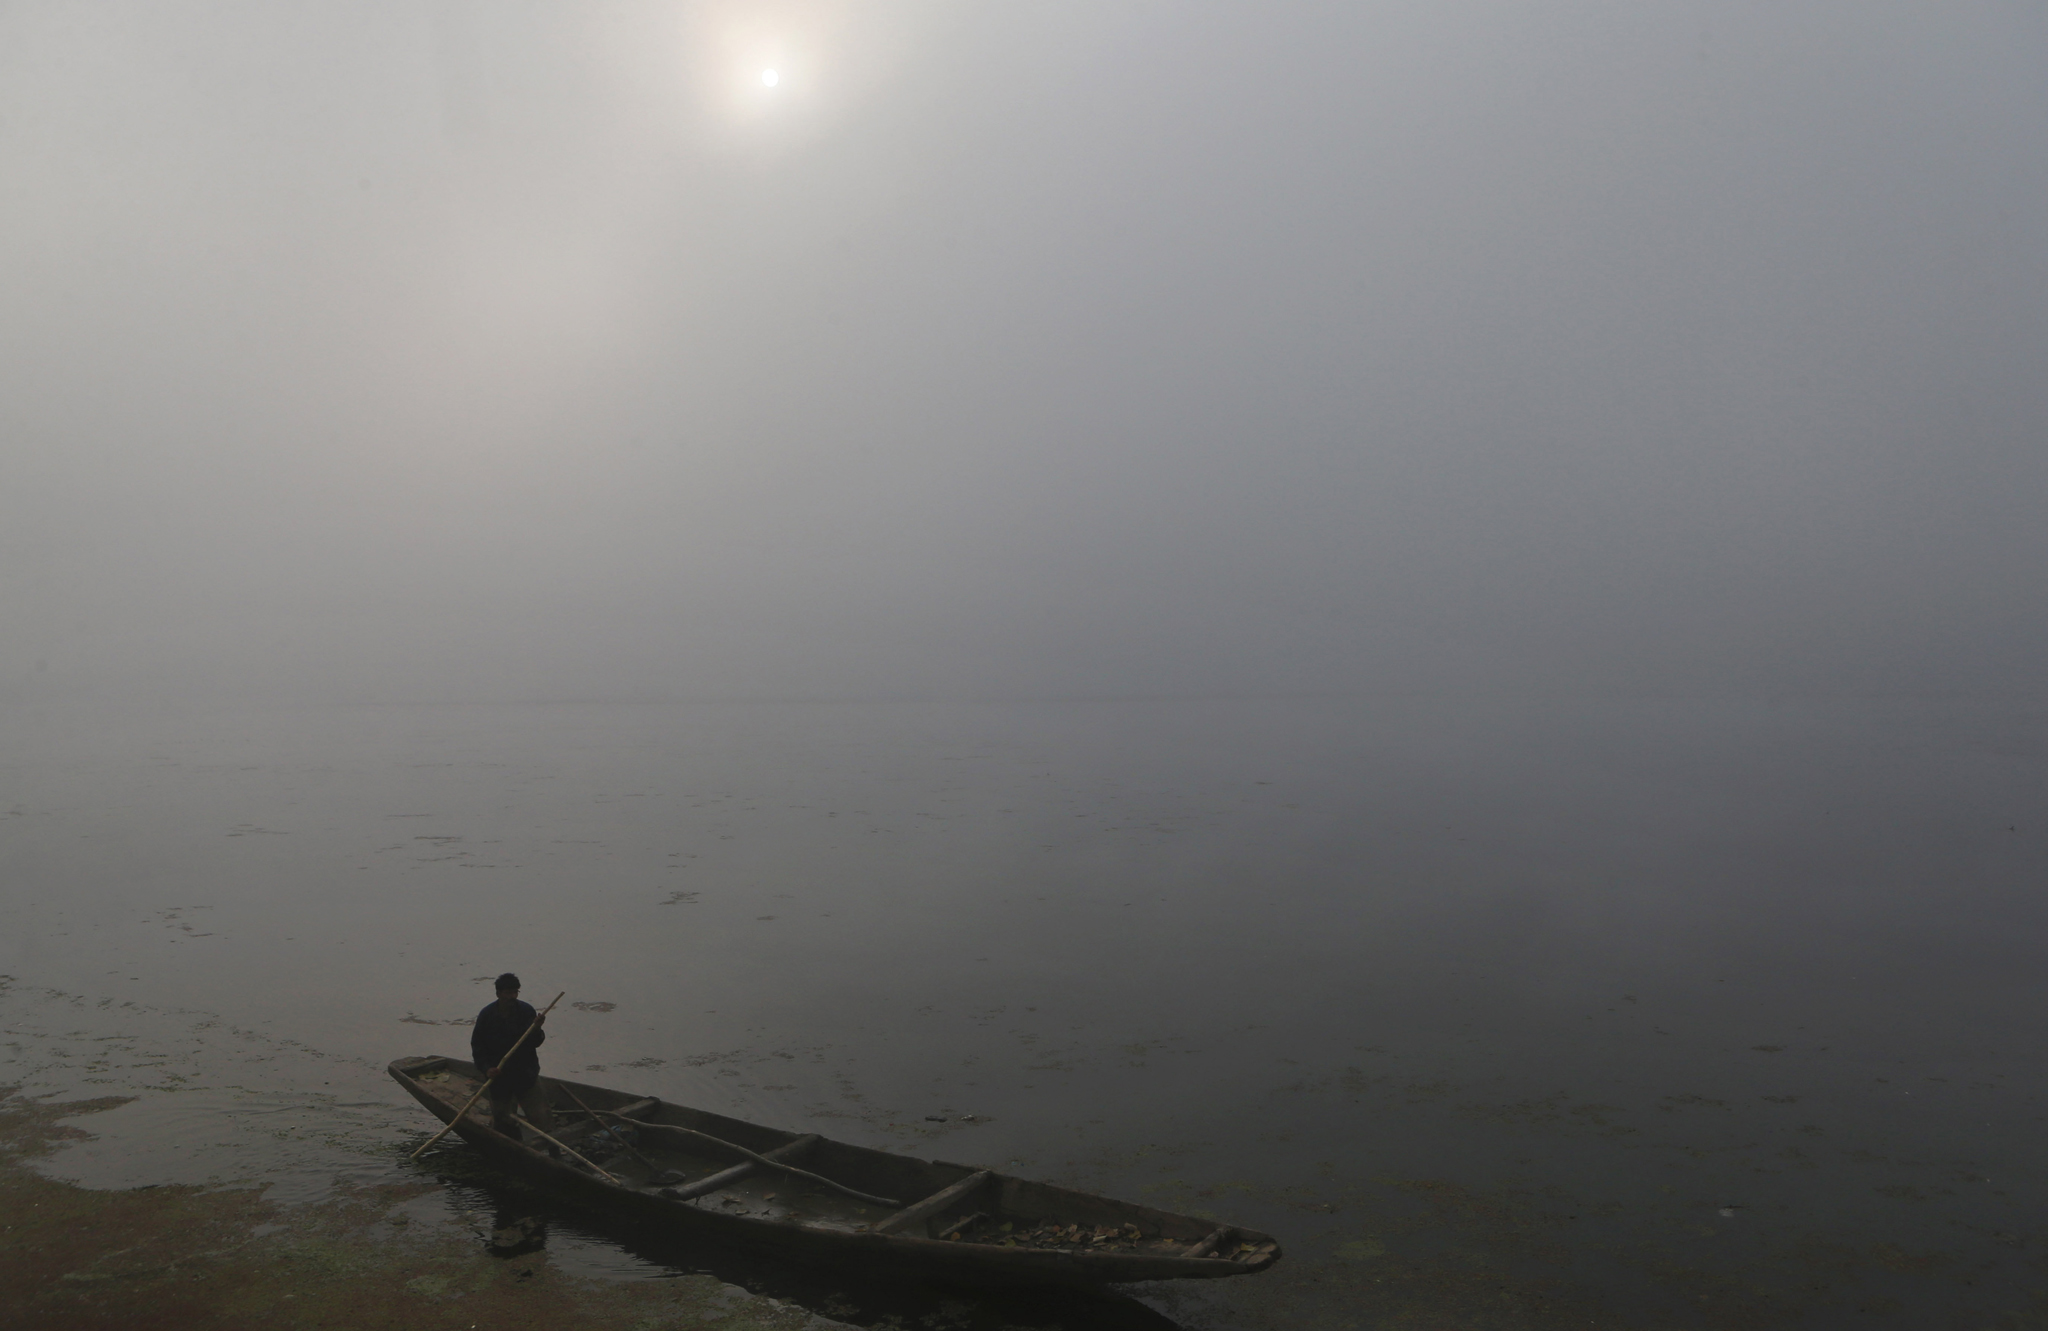 A Kashmiri boatman rows his boat on the Dal Lake surrounded by dense fog on a cold morning in Srinagar, India, Thursday, Oct. 30, 2014. Fog disrupts normal life in most parts of northern India during the winter months. (AP Photo/Dar Yasin)